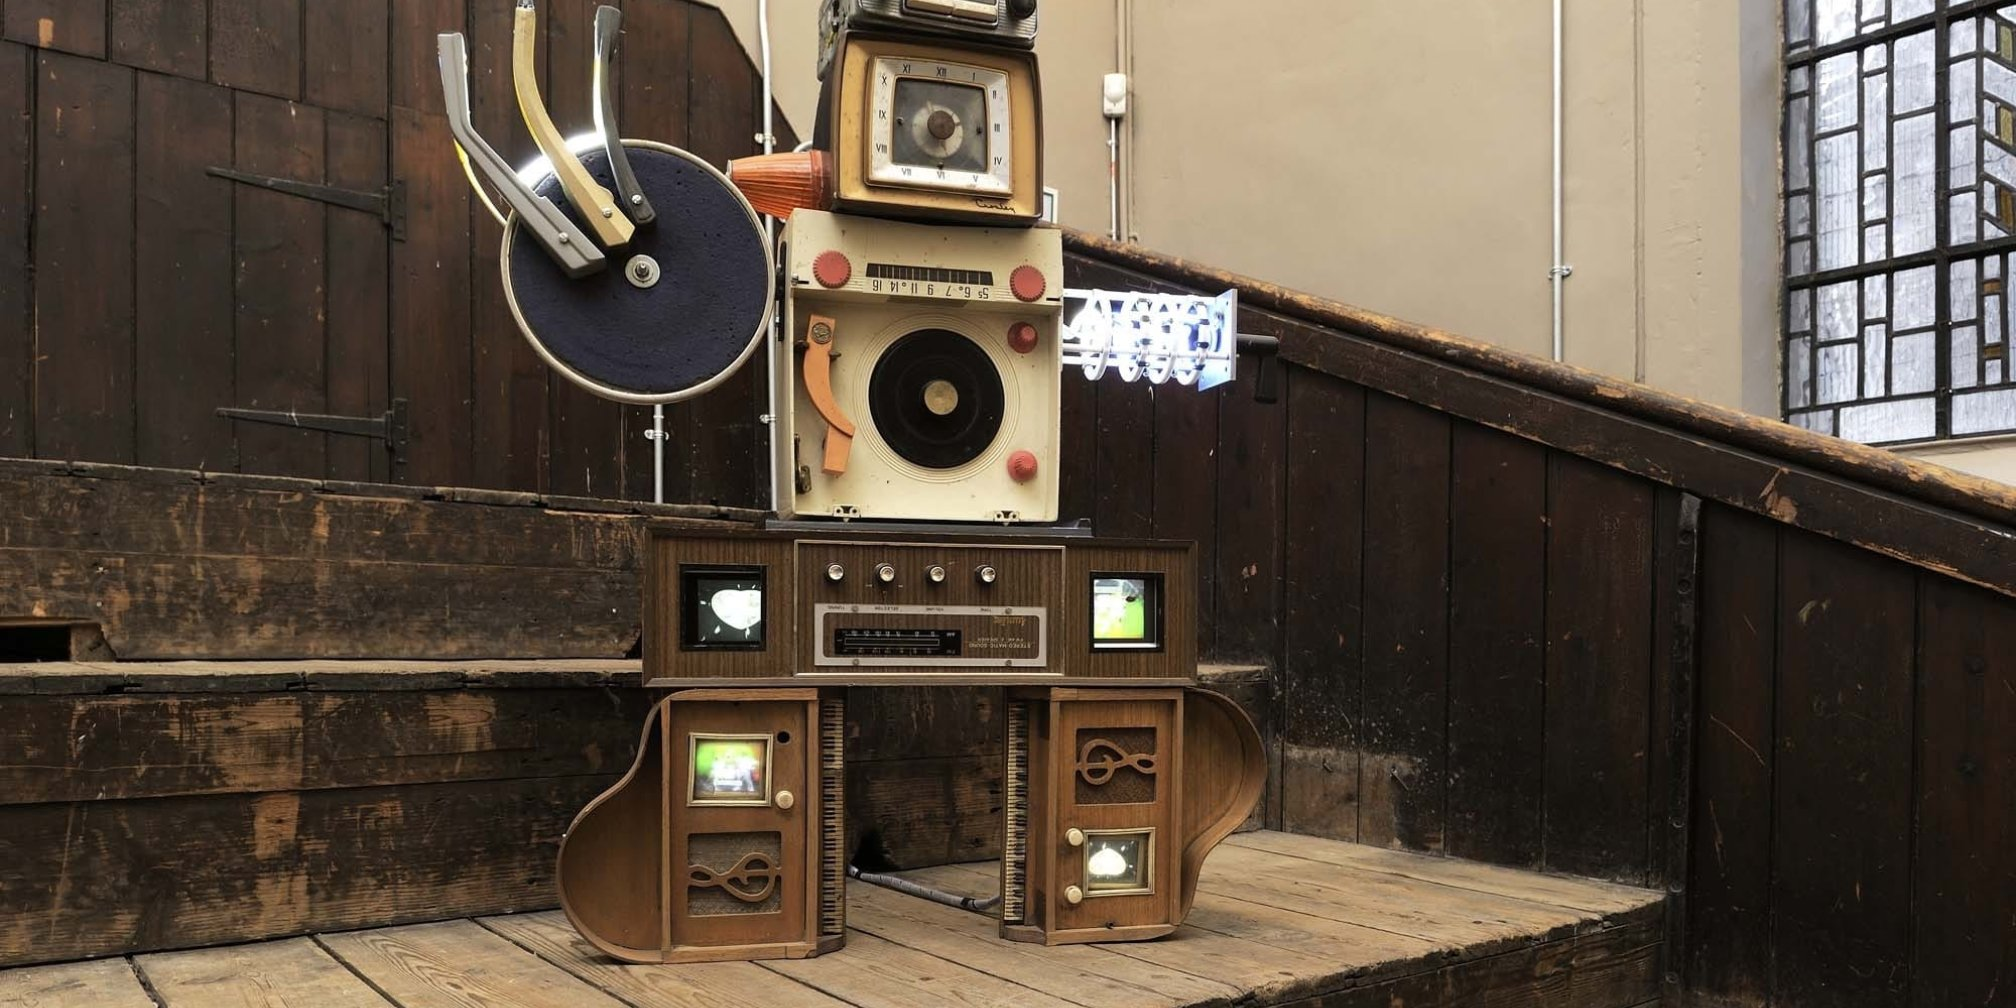 Work by Nam June Paik from the Zabludowicz Collection on show in Edinburgh